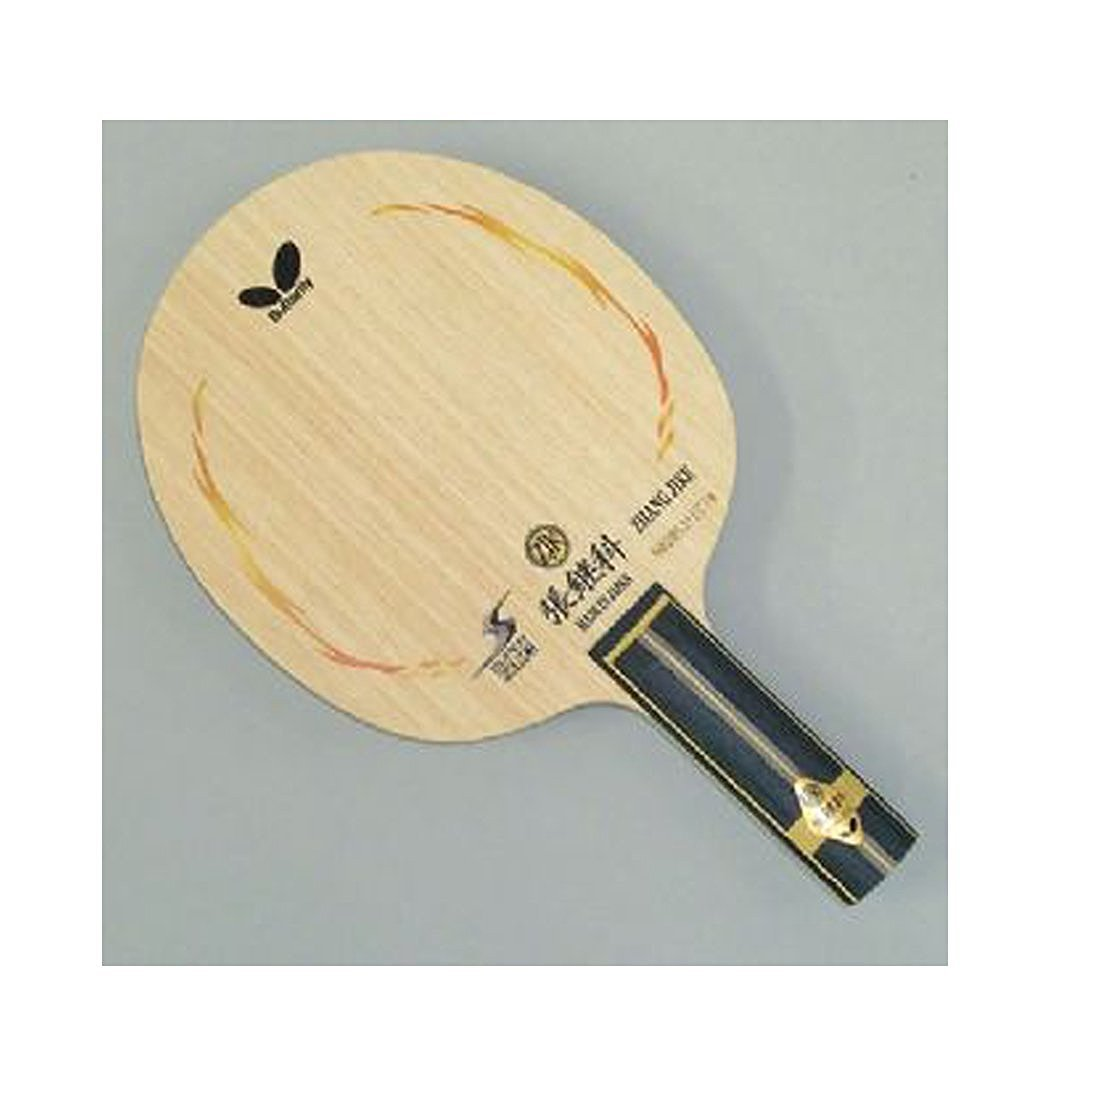 Diskon Zhang Jike Super Zlc Blades Quality Goods St Handle Indonesia